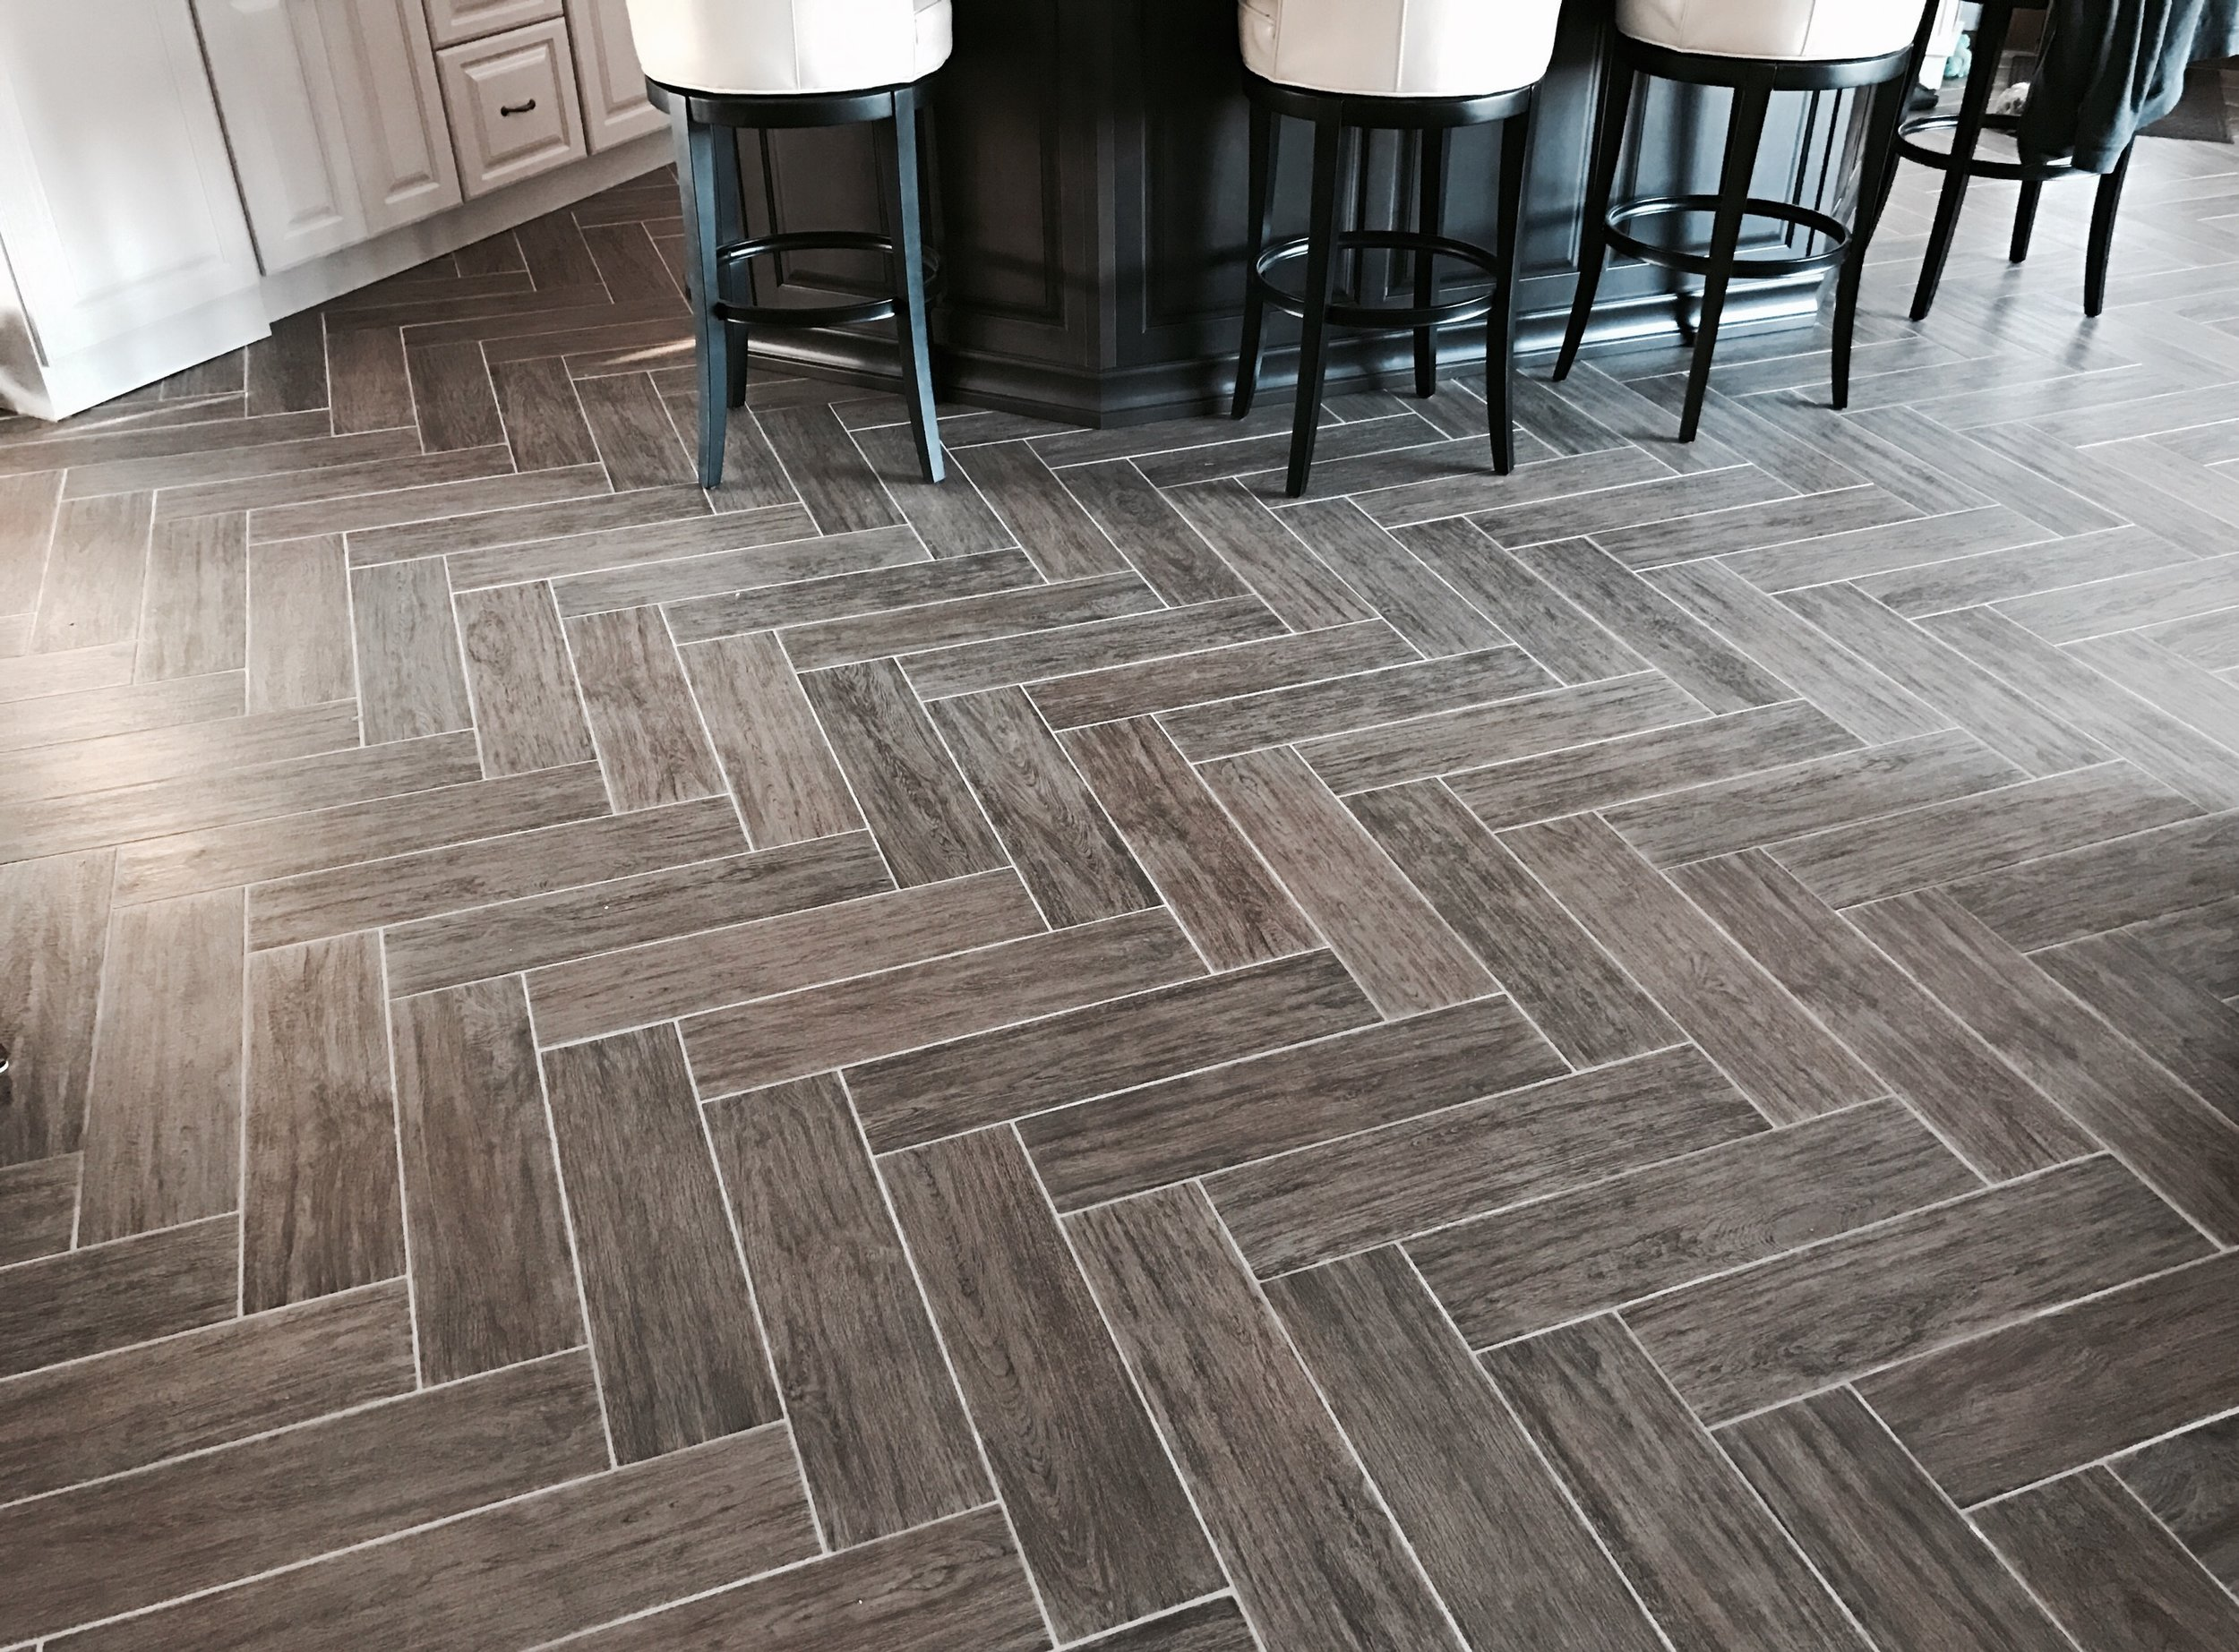 Herringbone Tile Floor